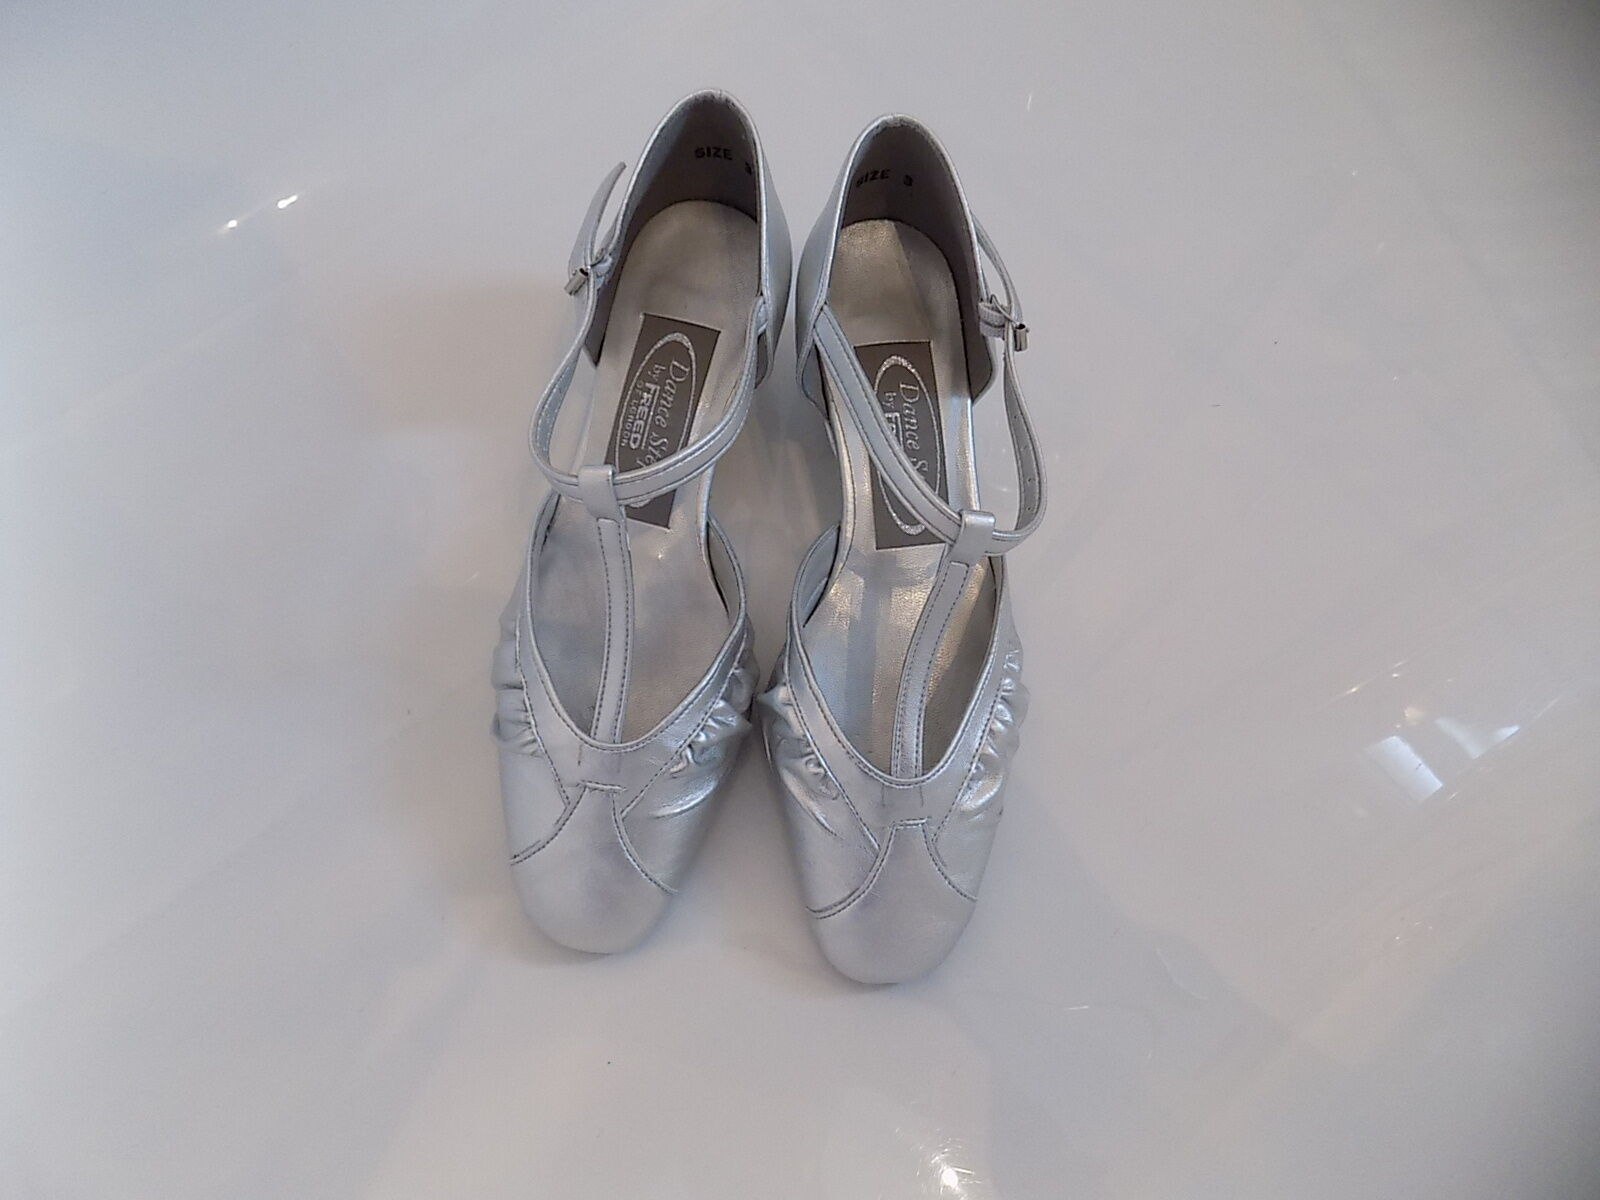 Freed of London Dance Steps Diamond Silver shoes size 3